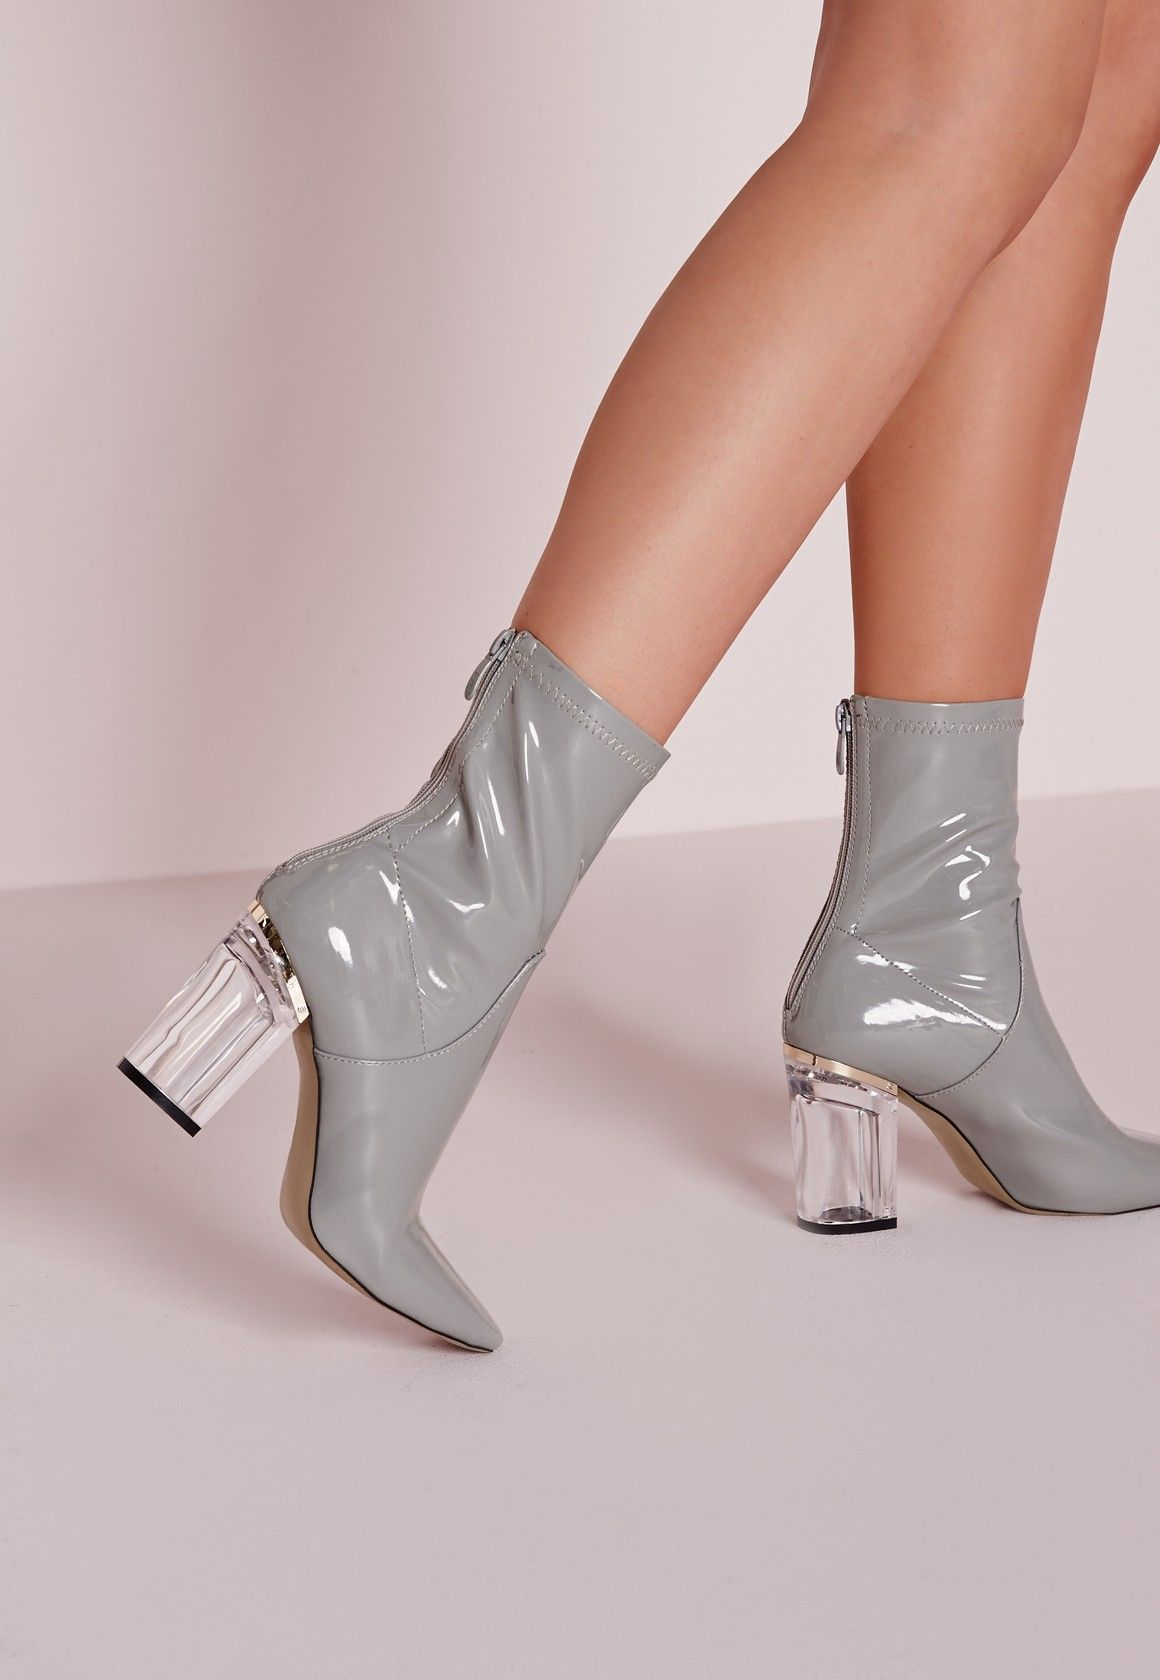 aeded095bb Missguided - Patent Ankle Boots Perspex Heel Grey | Shoesssss in ...